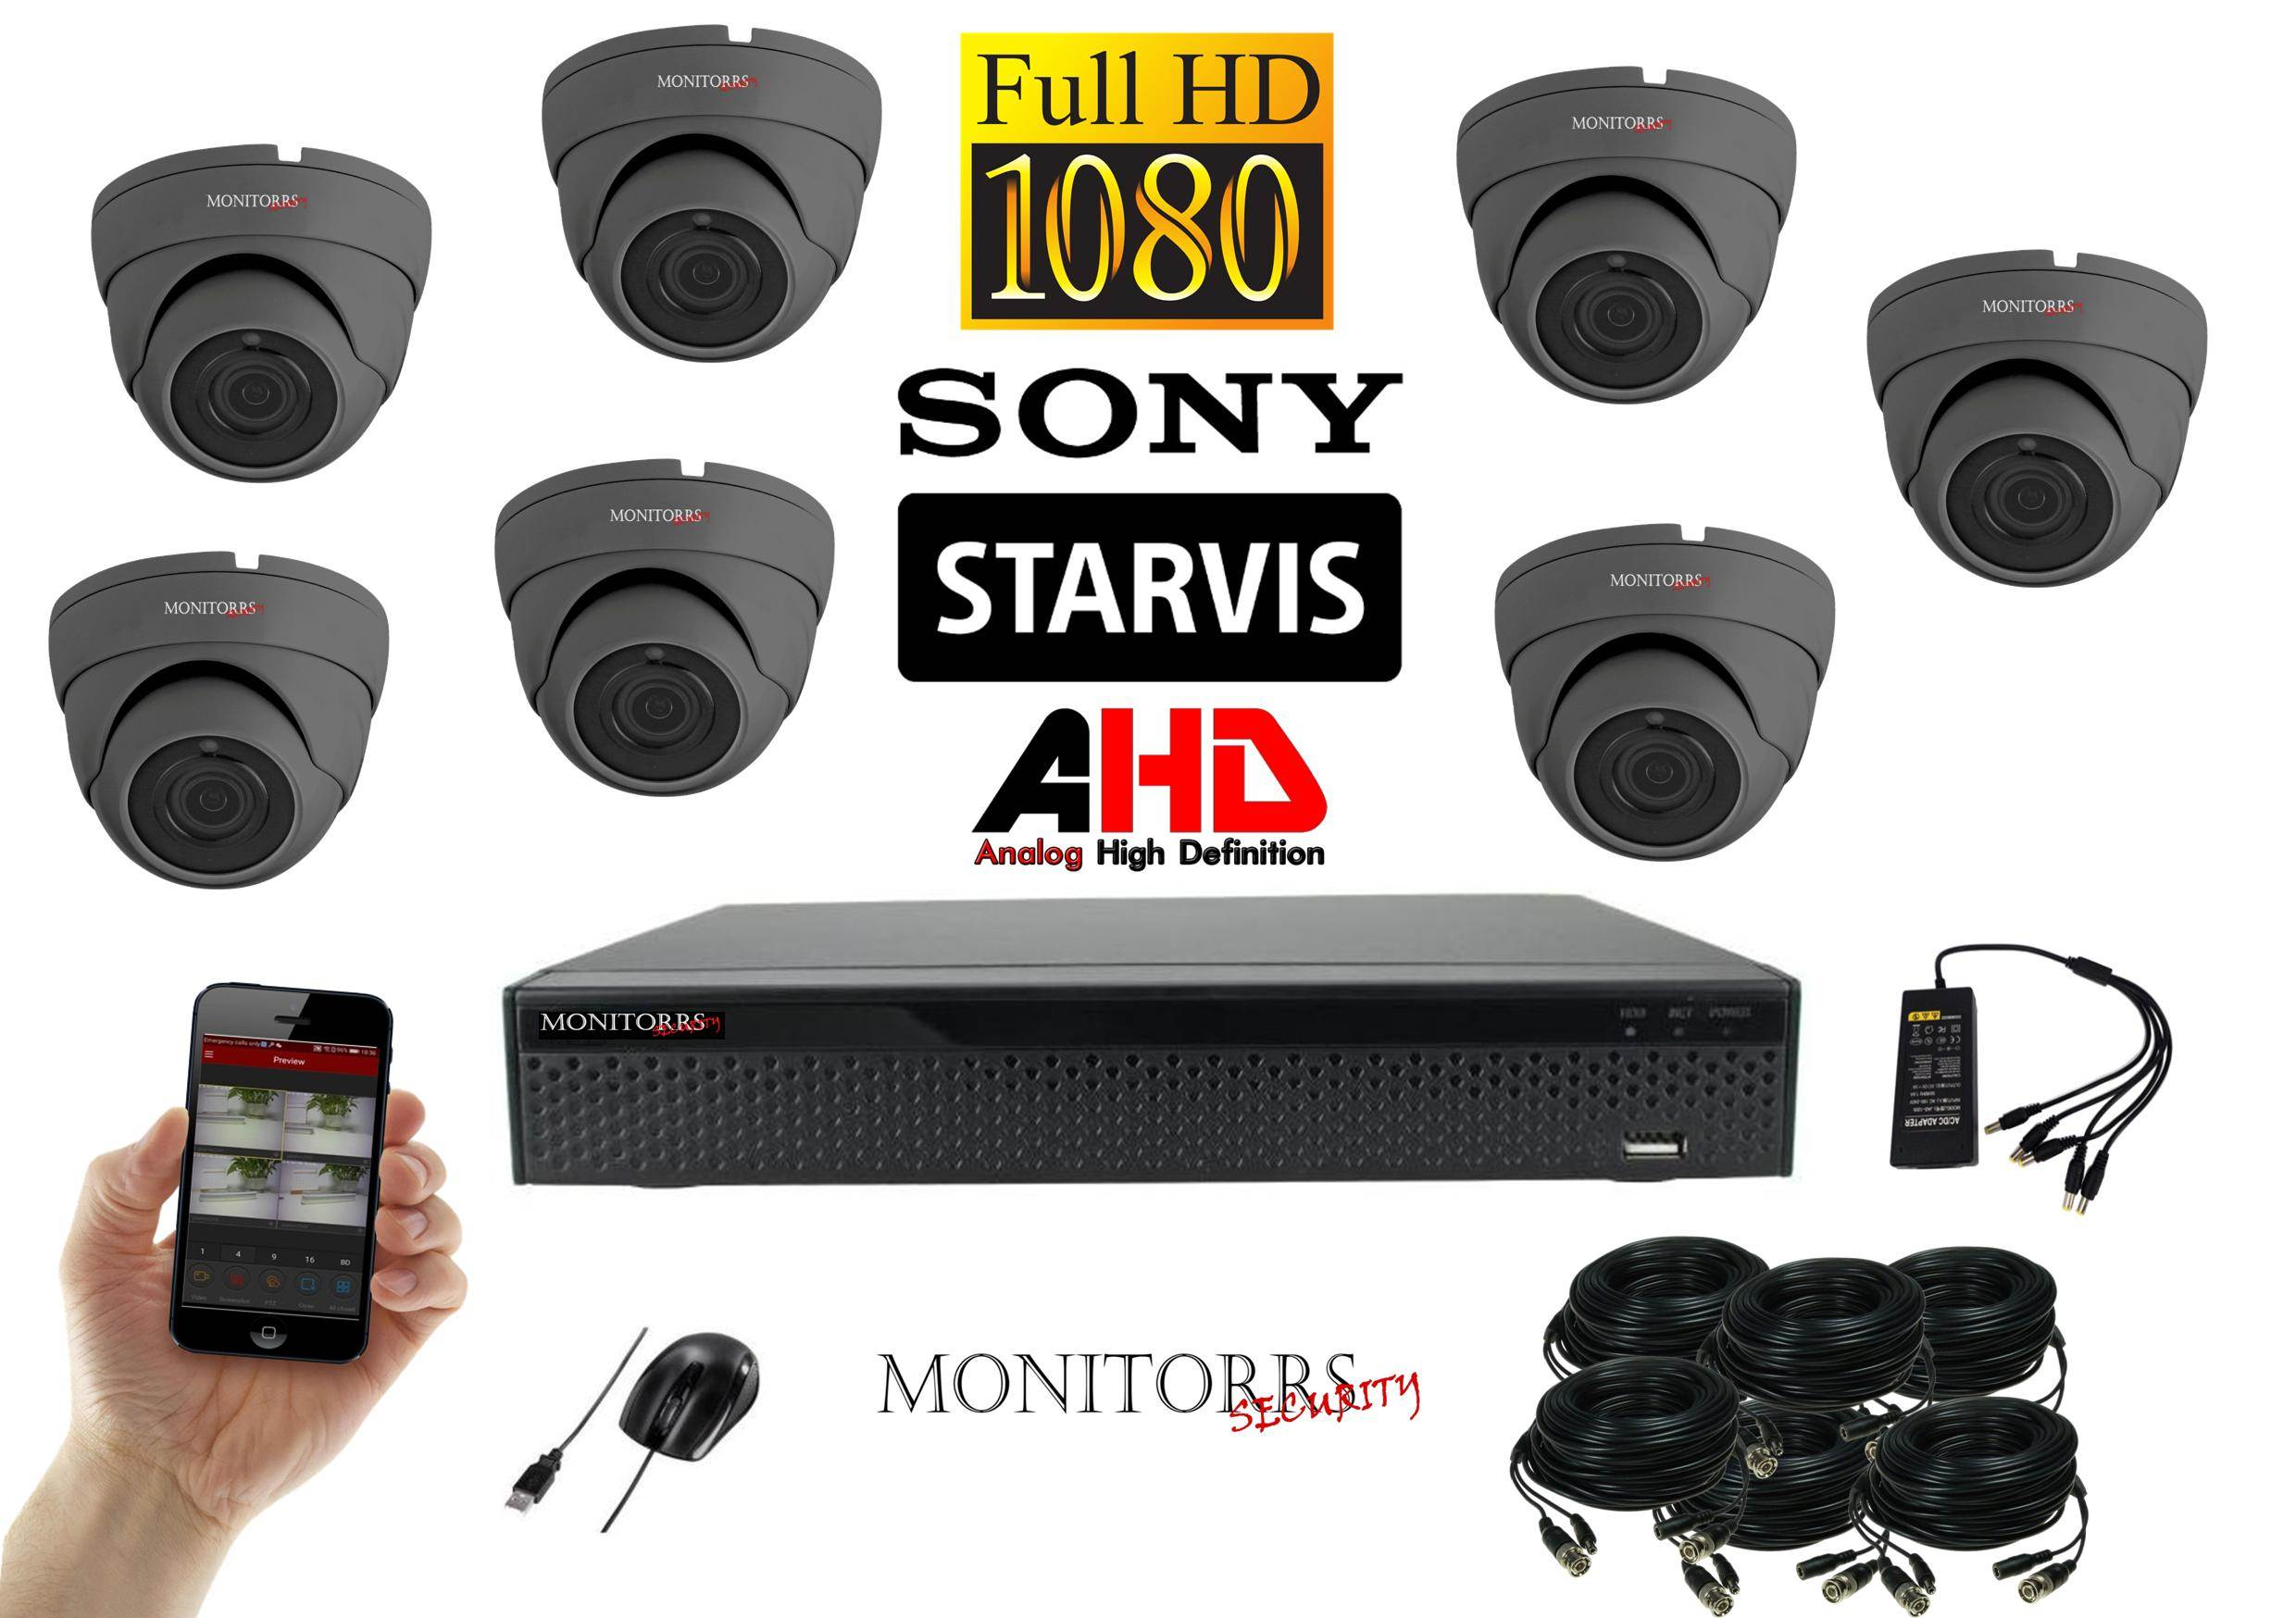 Monitorrs Security Starvis AHD 7 kamerový set 2,1 M.Pix. GDome (6256K7)